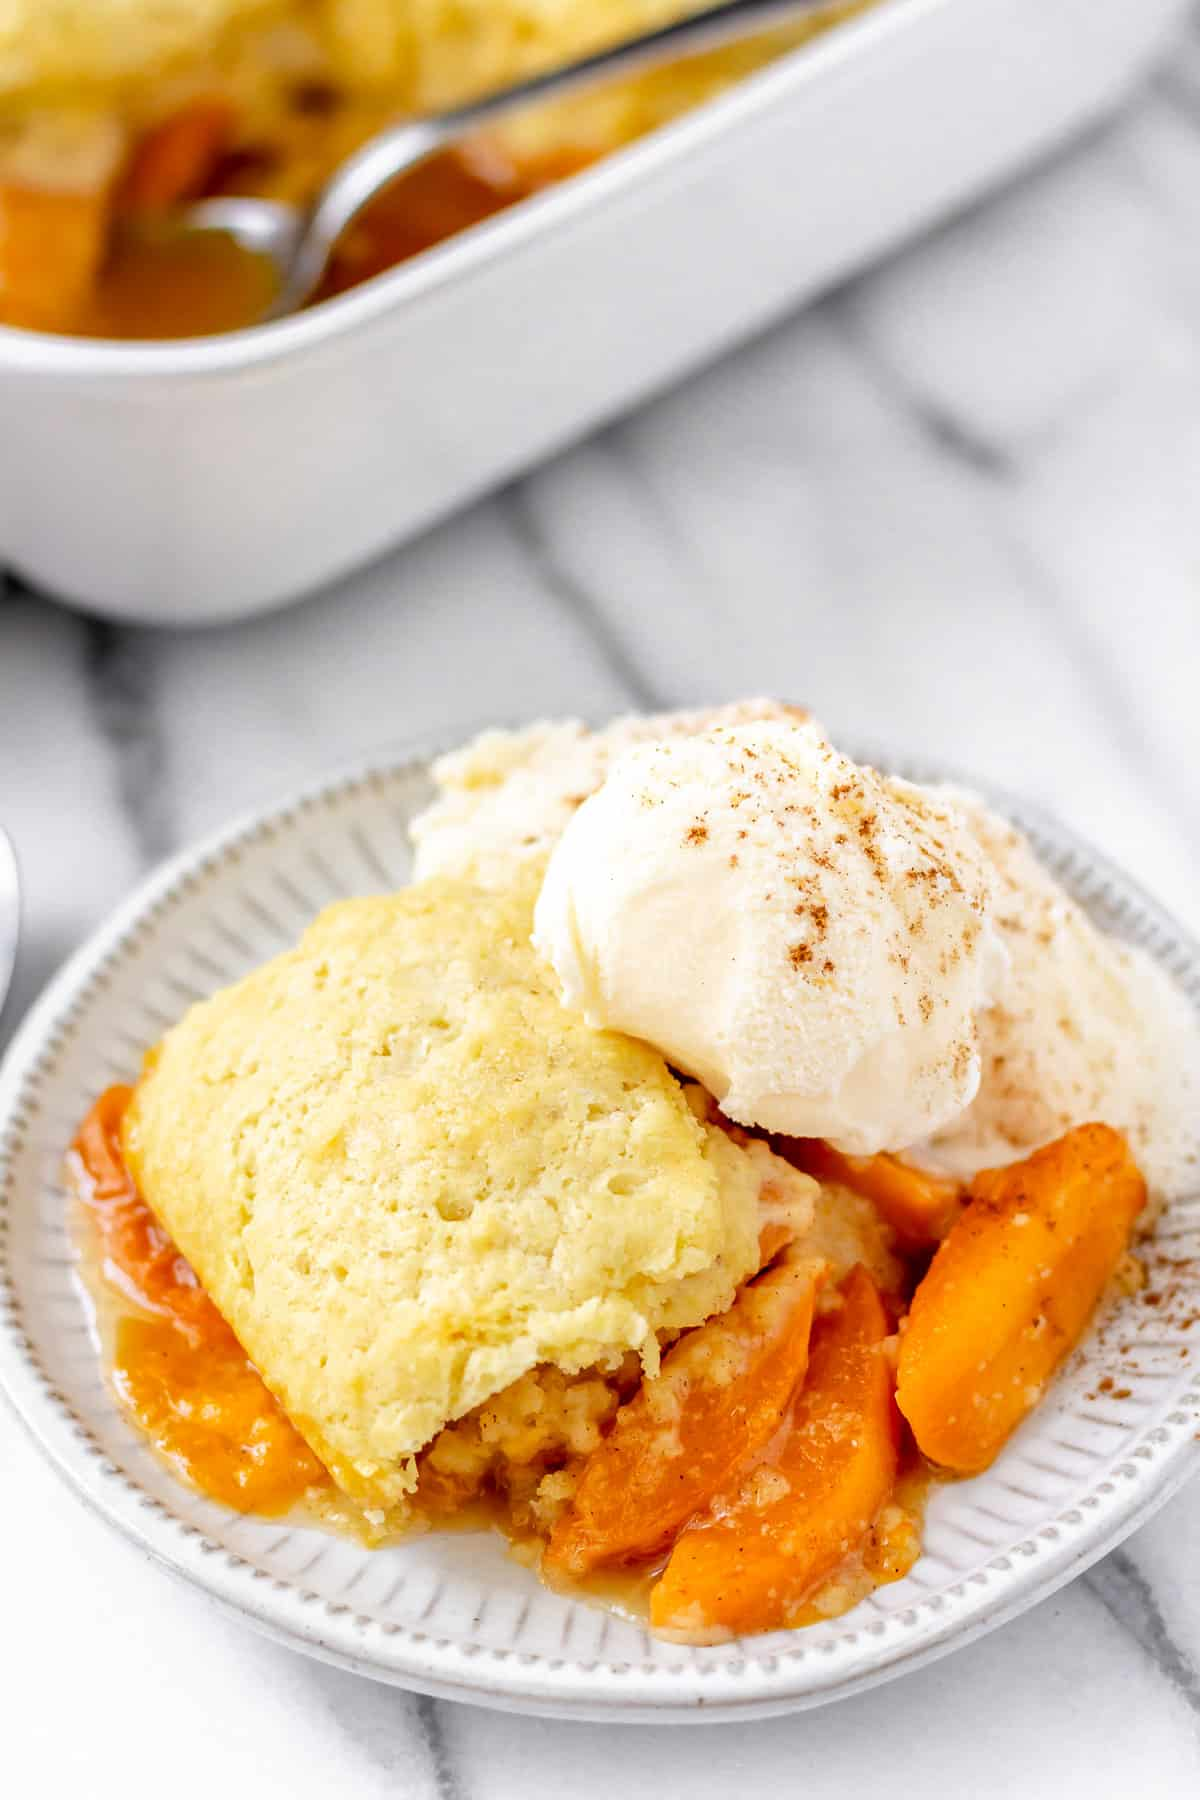 A serving of apricot cobbler with ice cream and the baking dish in the background